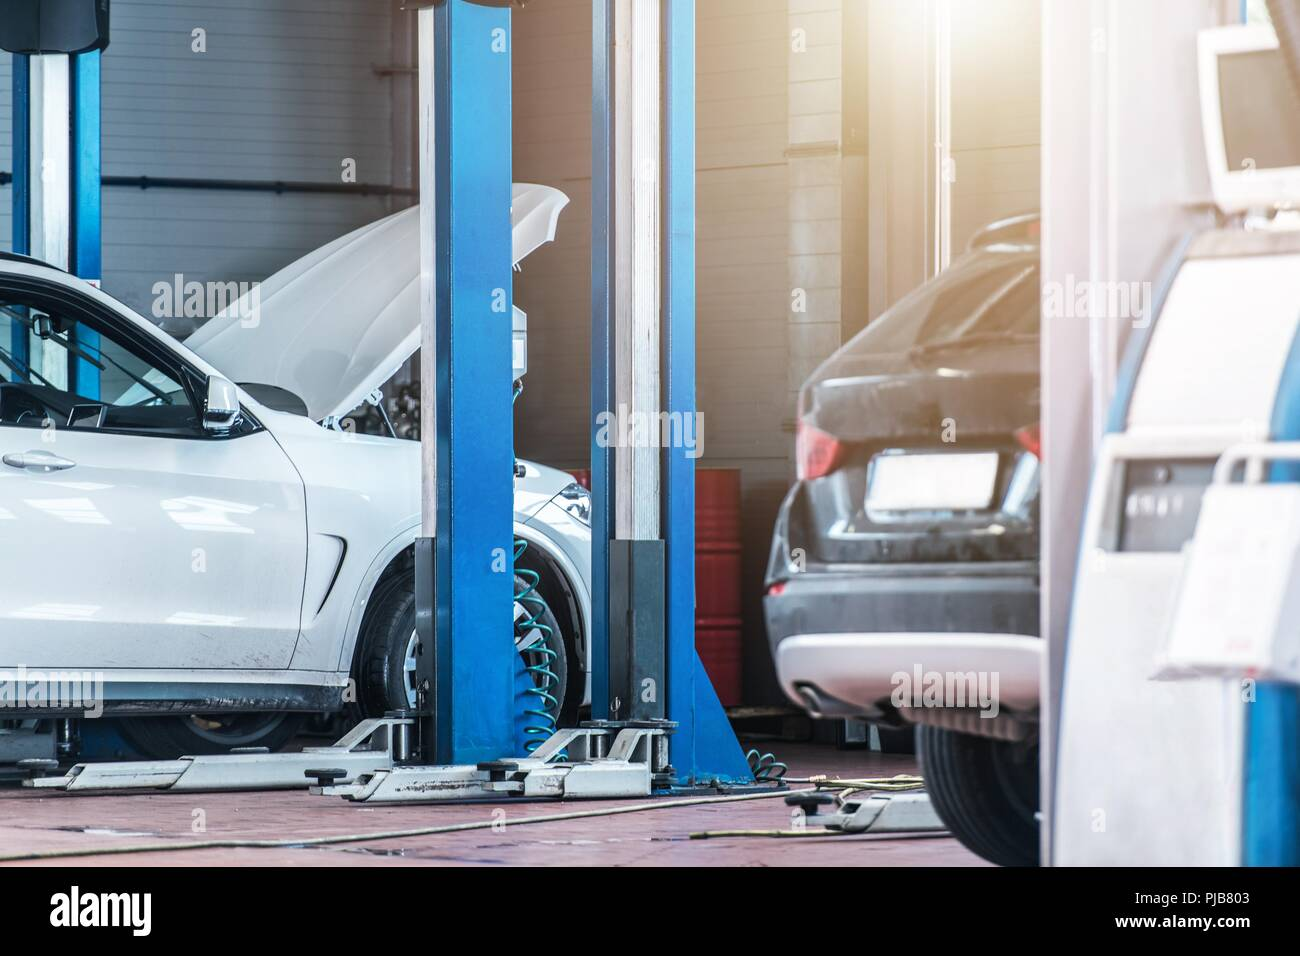 Auto Service Vehicles Maintenance Car Service Center Interior With Lifts Automotive Industry Stock Photo Alamy